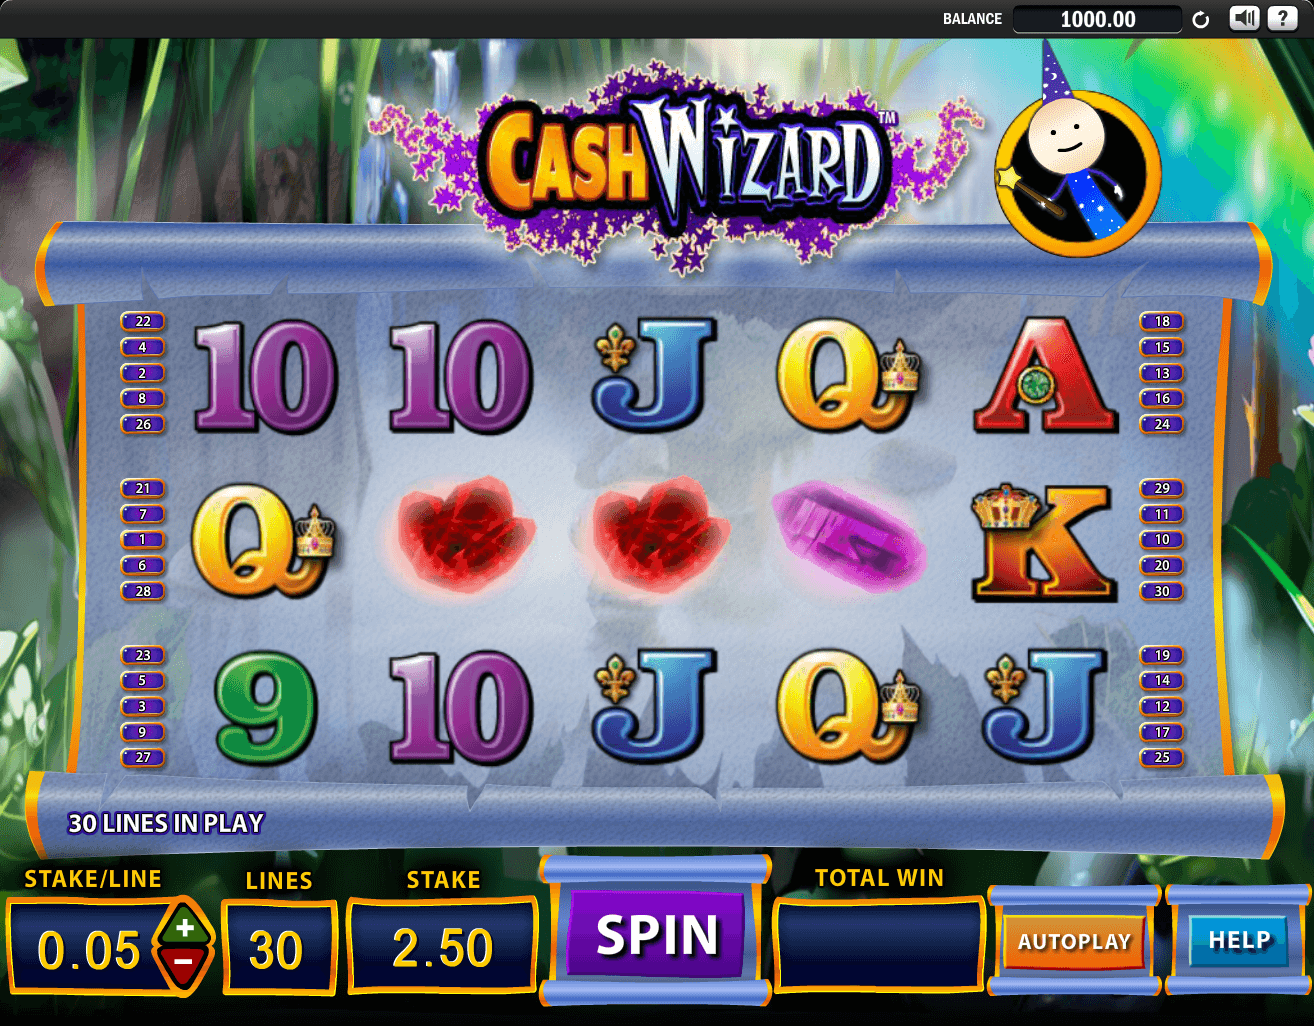 Wizard Shop Slot Machine - Play Online for Free Money